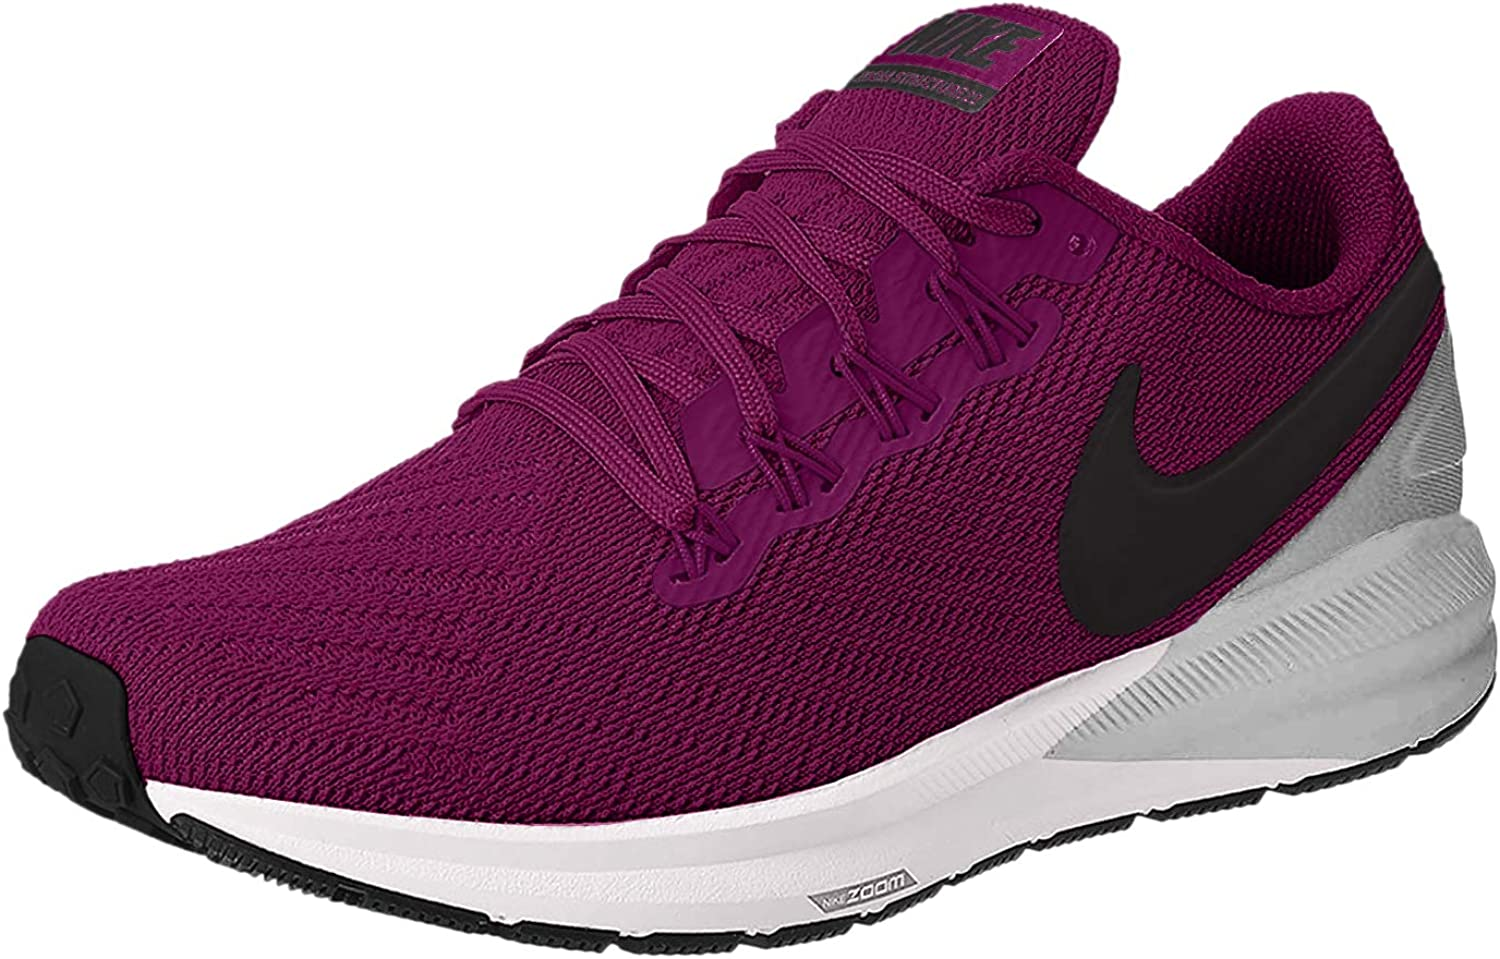 NIKE W Air Zoom Structure 22, Zapatillas de Running para Mujer